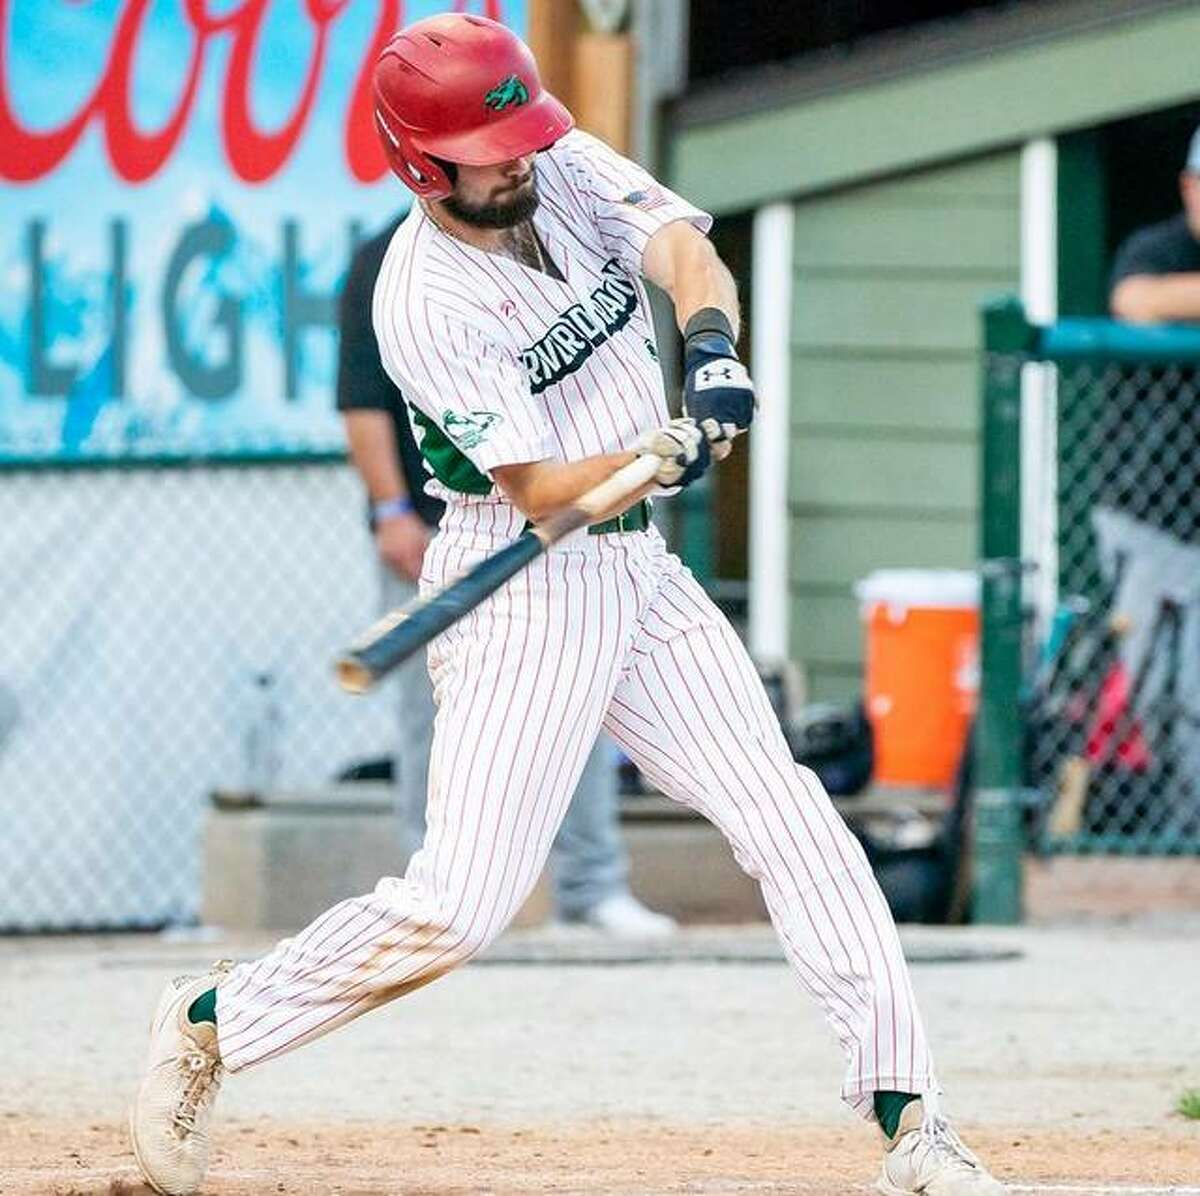 The Alton River Dragons' Josh Johnson had two hits and an RBI in hi steam's 8-4 loss to Cape Girardeau Friday night at Lloyd Hopkins Field.